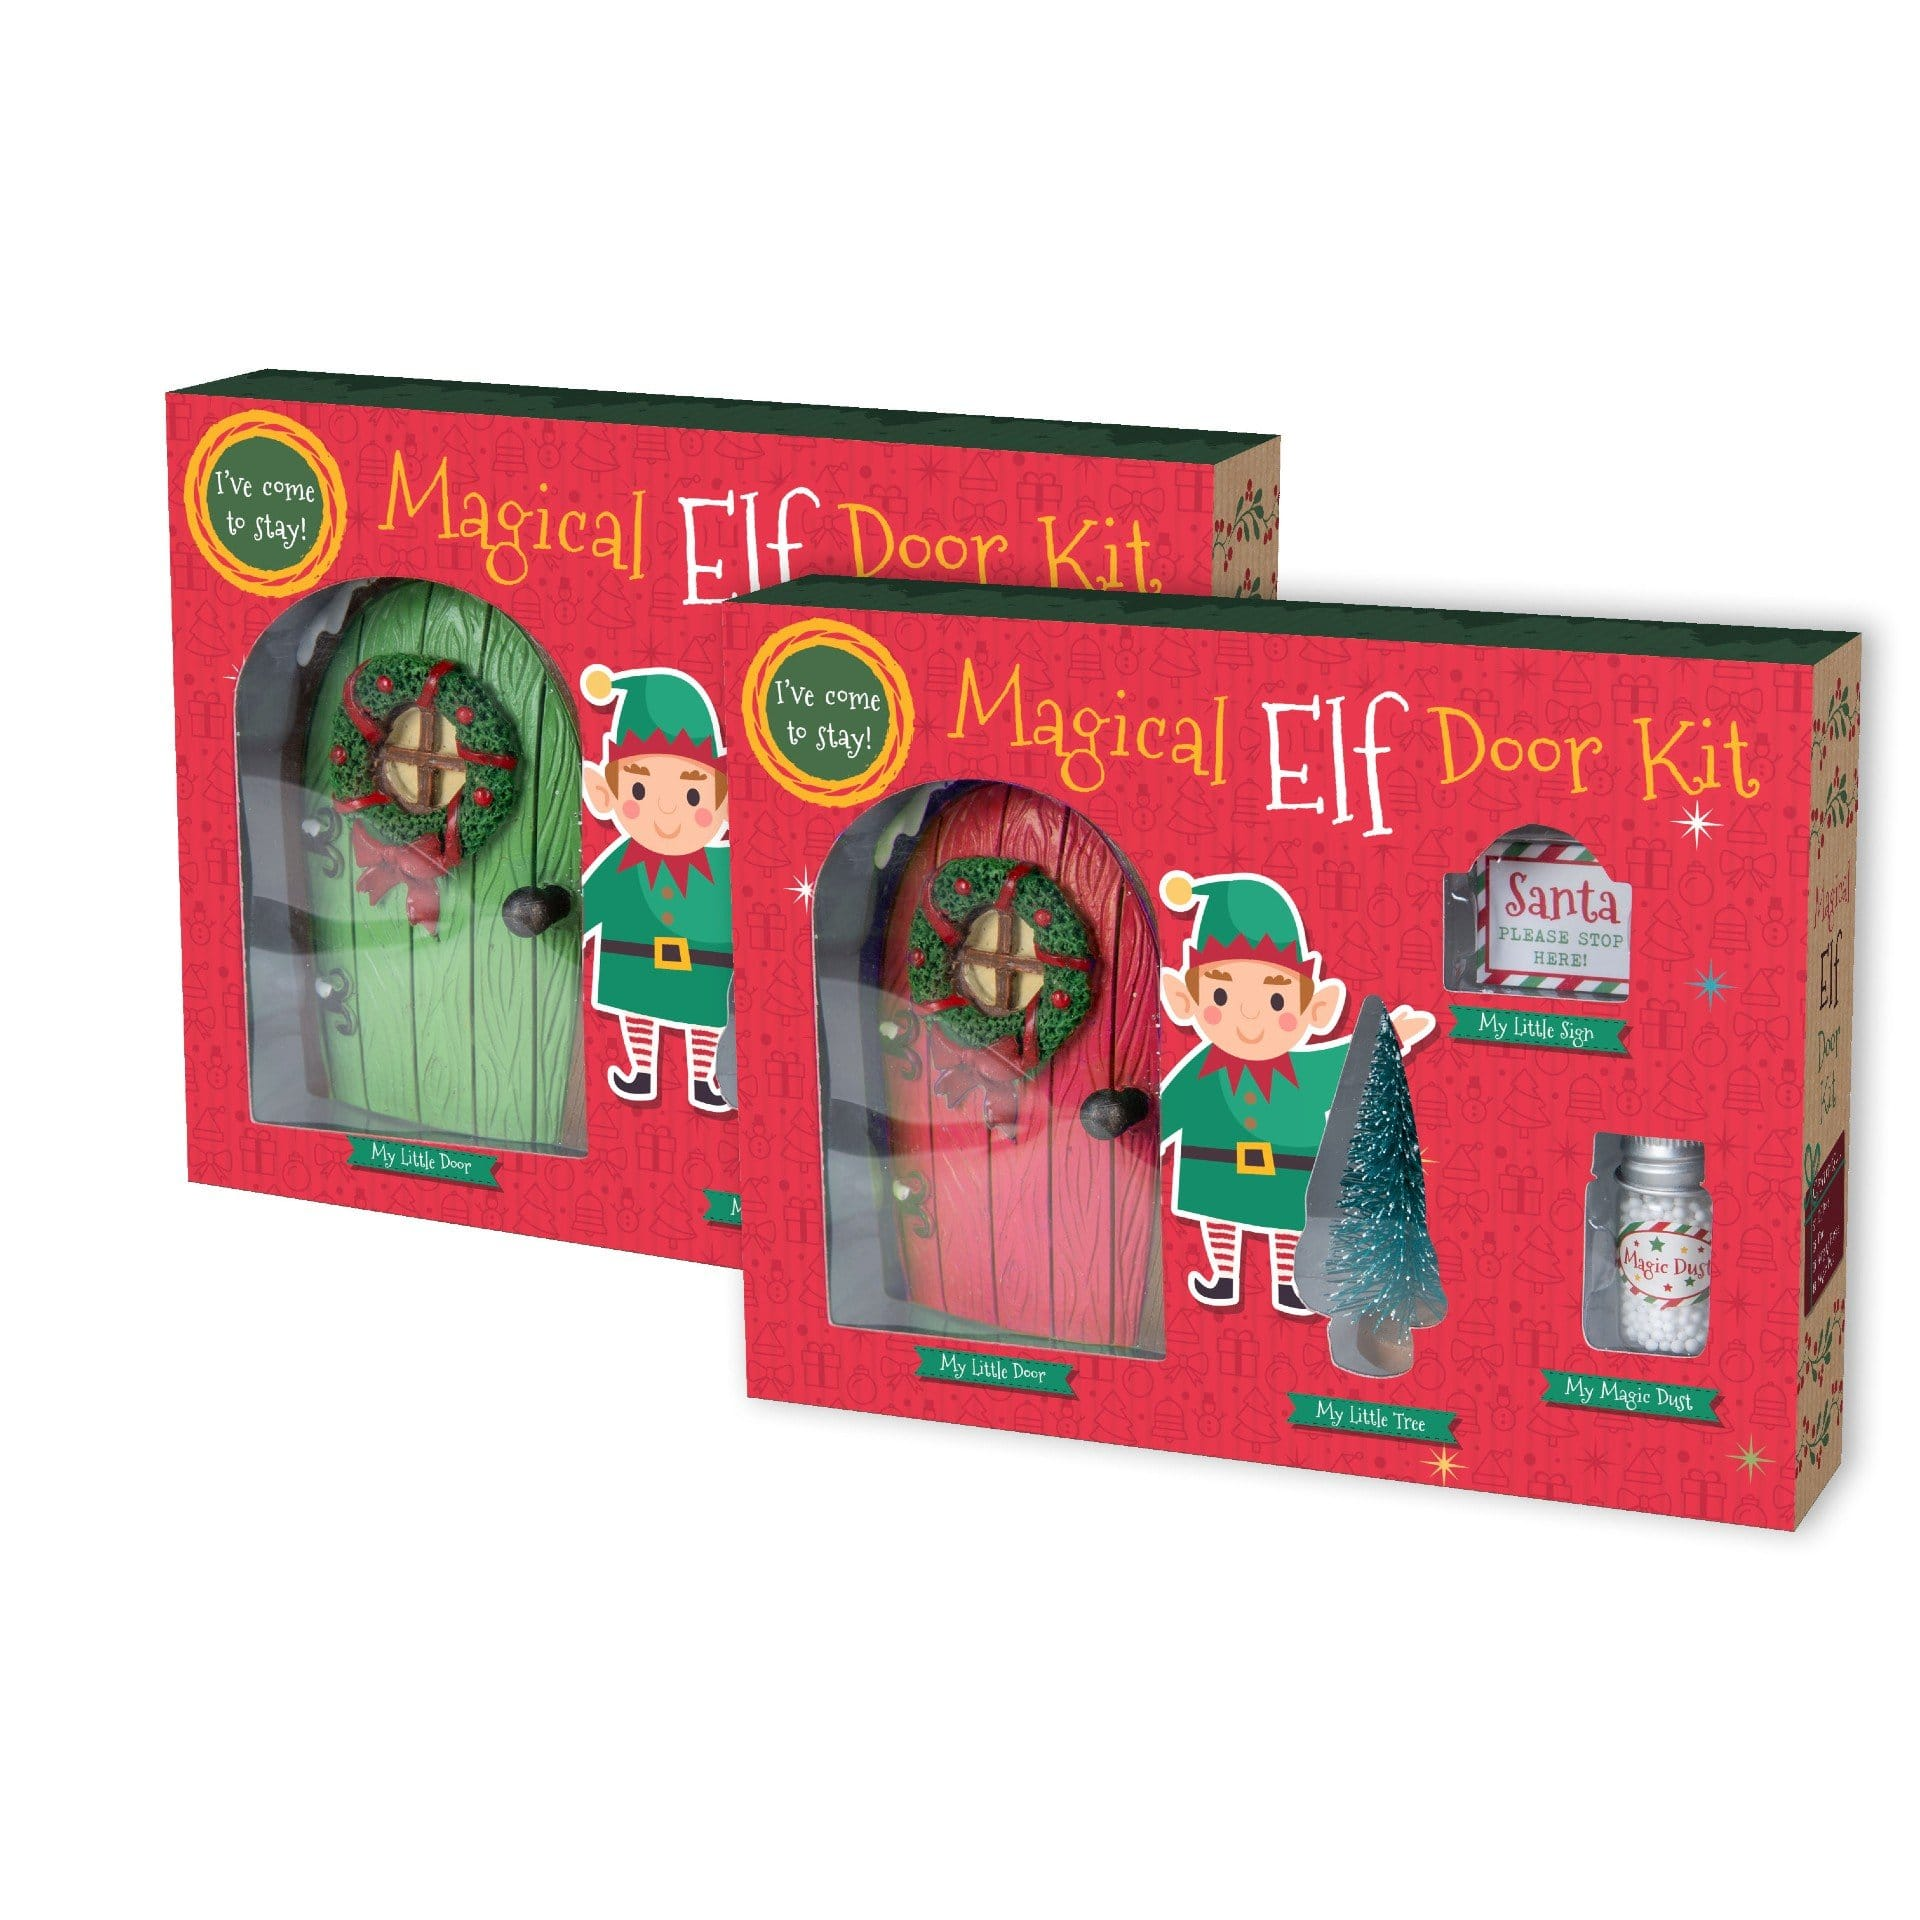 Magical Elf Door Kit